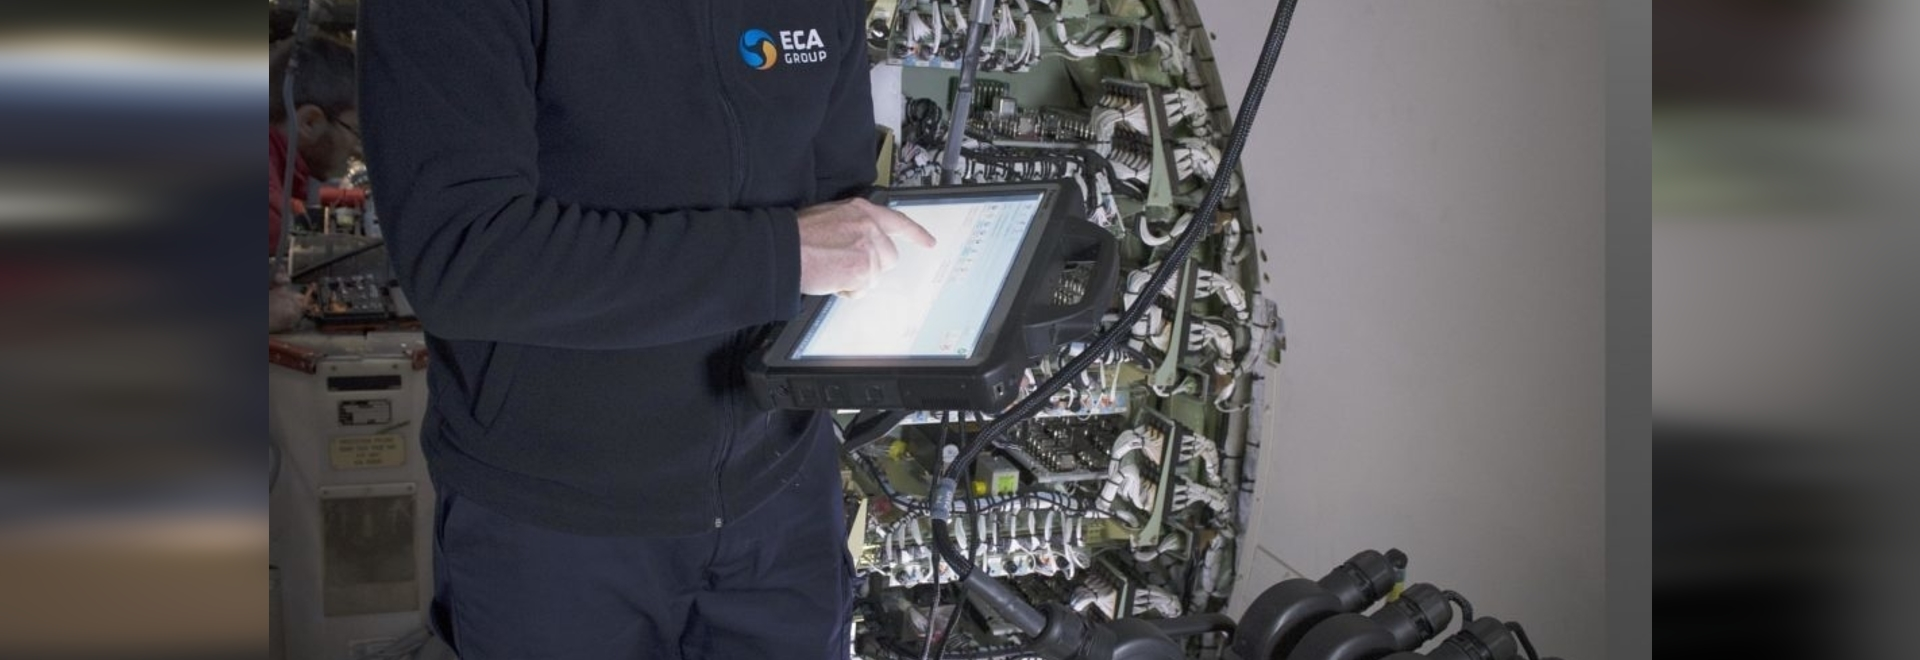 ECA Group supplies testing solutions for aircraft in production